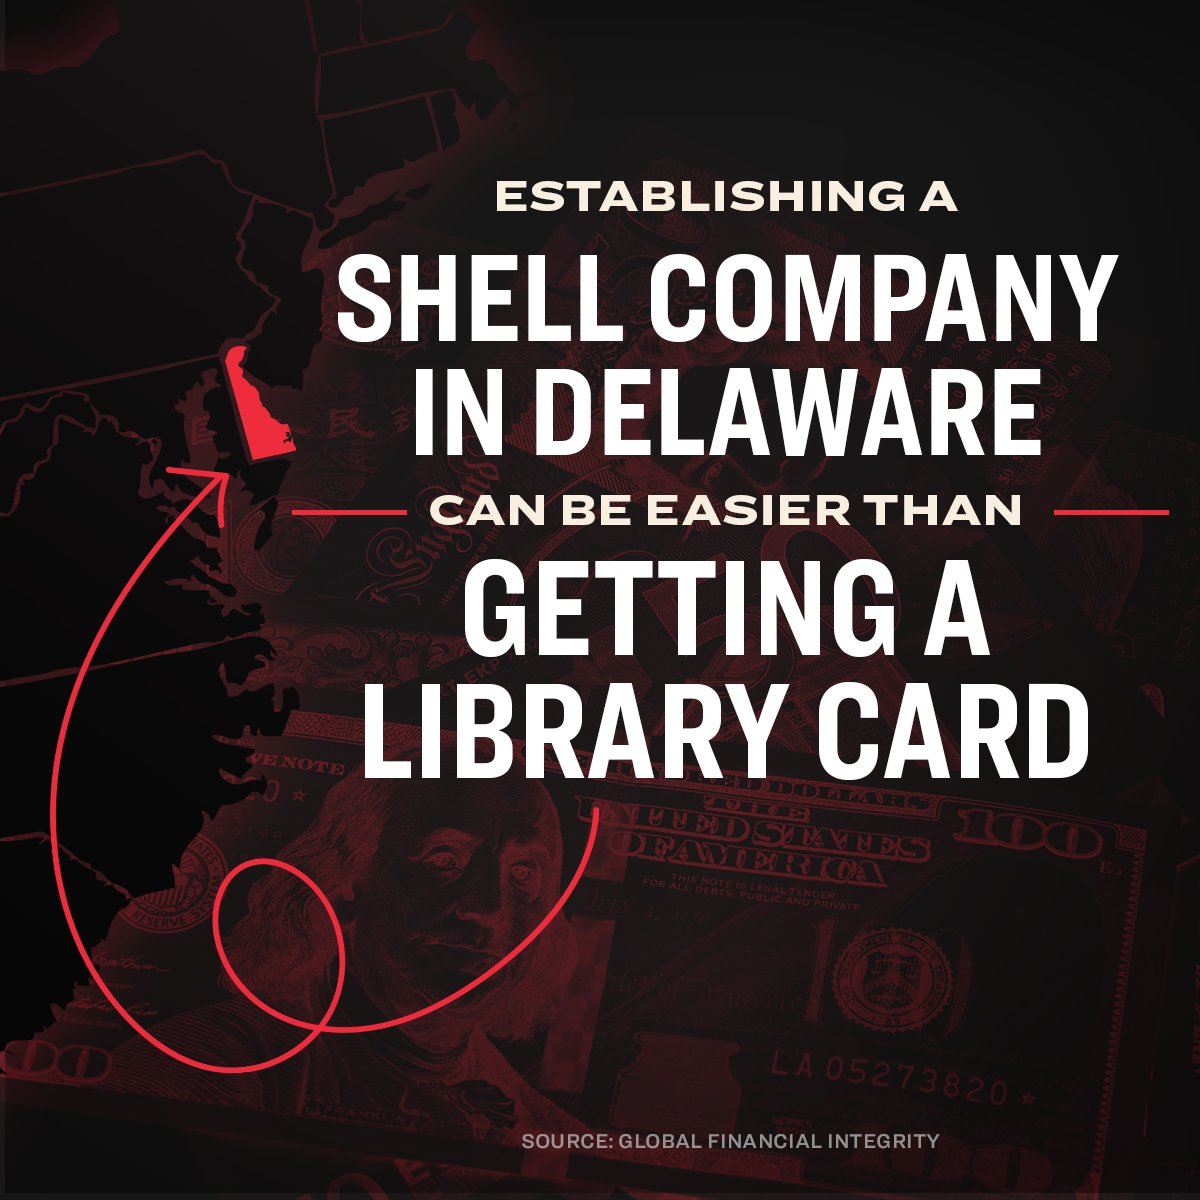 Establishing a shell company in Delaware can be easier than getting a library card.